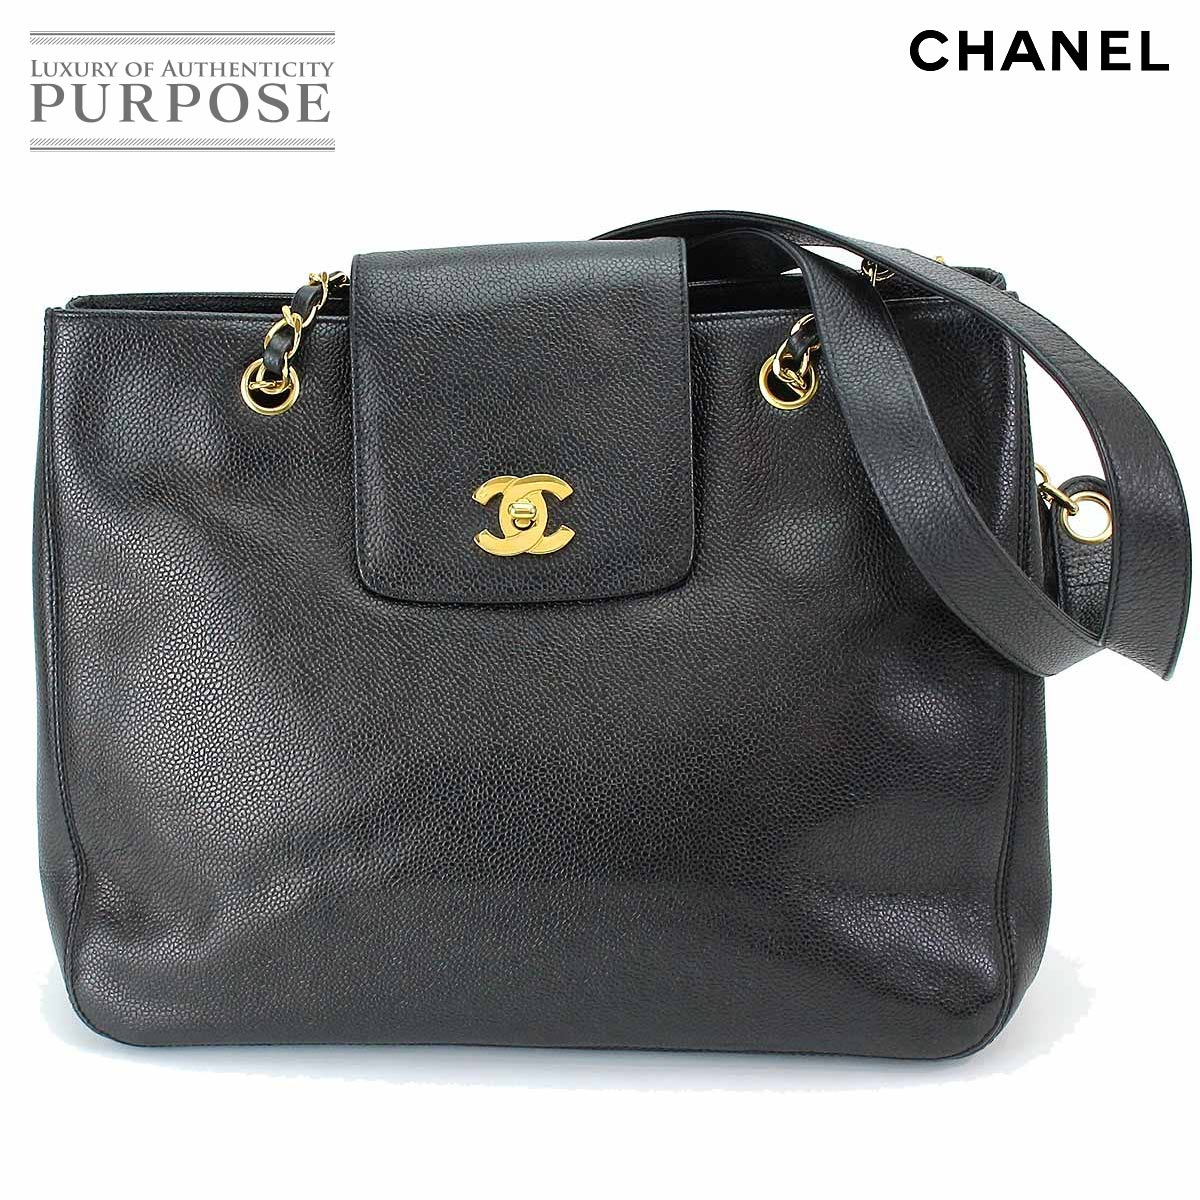 b0b5e556204e Chanel CHANEL caviar skin chain tote bag black leather gold metal fittings  vintage  used  brand